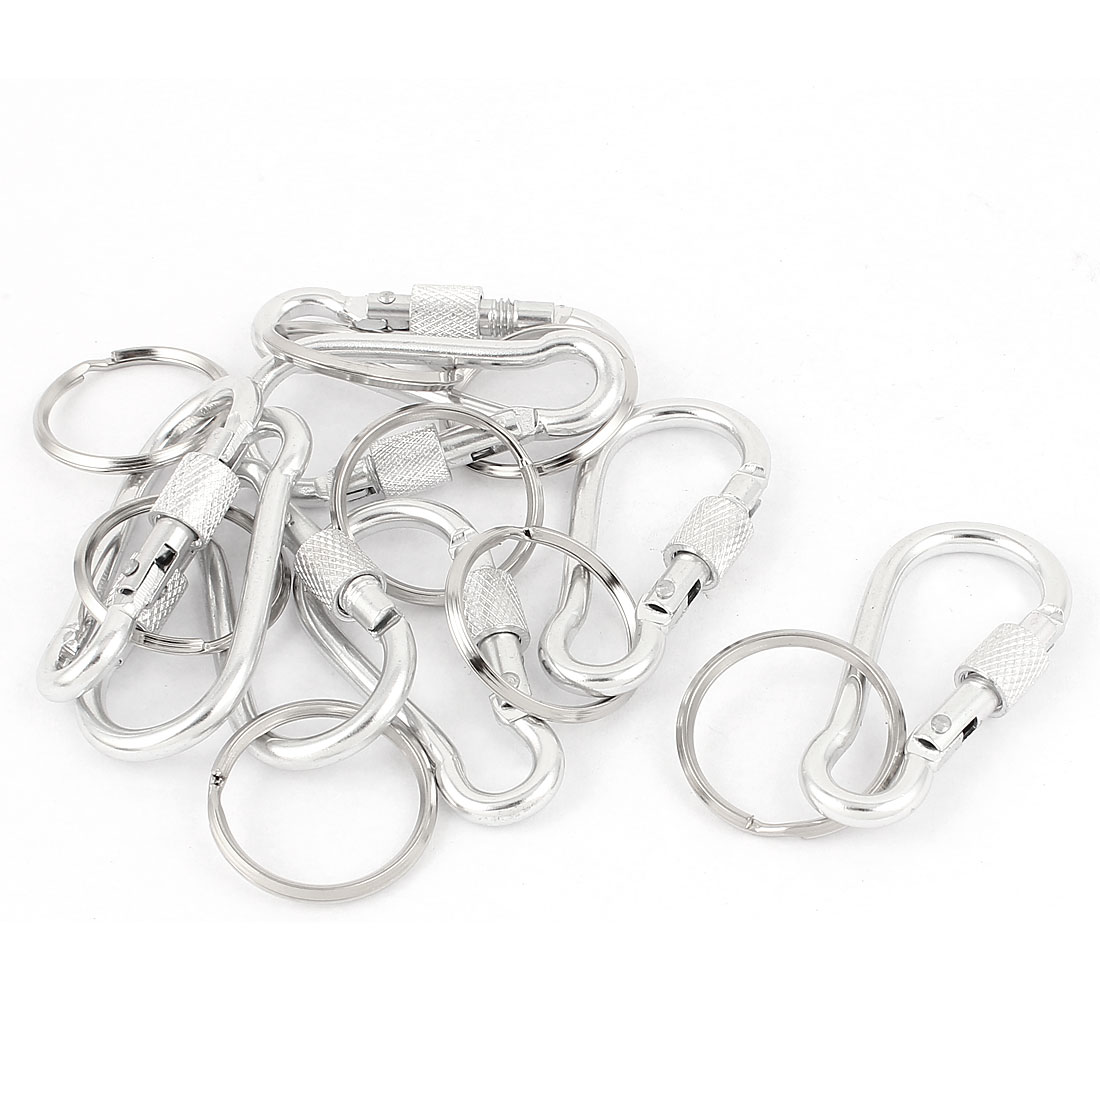 8pcs Silver Tone Metal Calabash Shape Screw Locking Carabiner Clip Spring Snap Hook Key Ring Chain